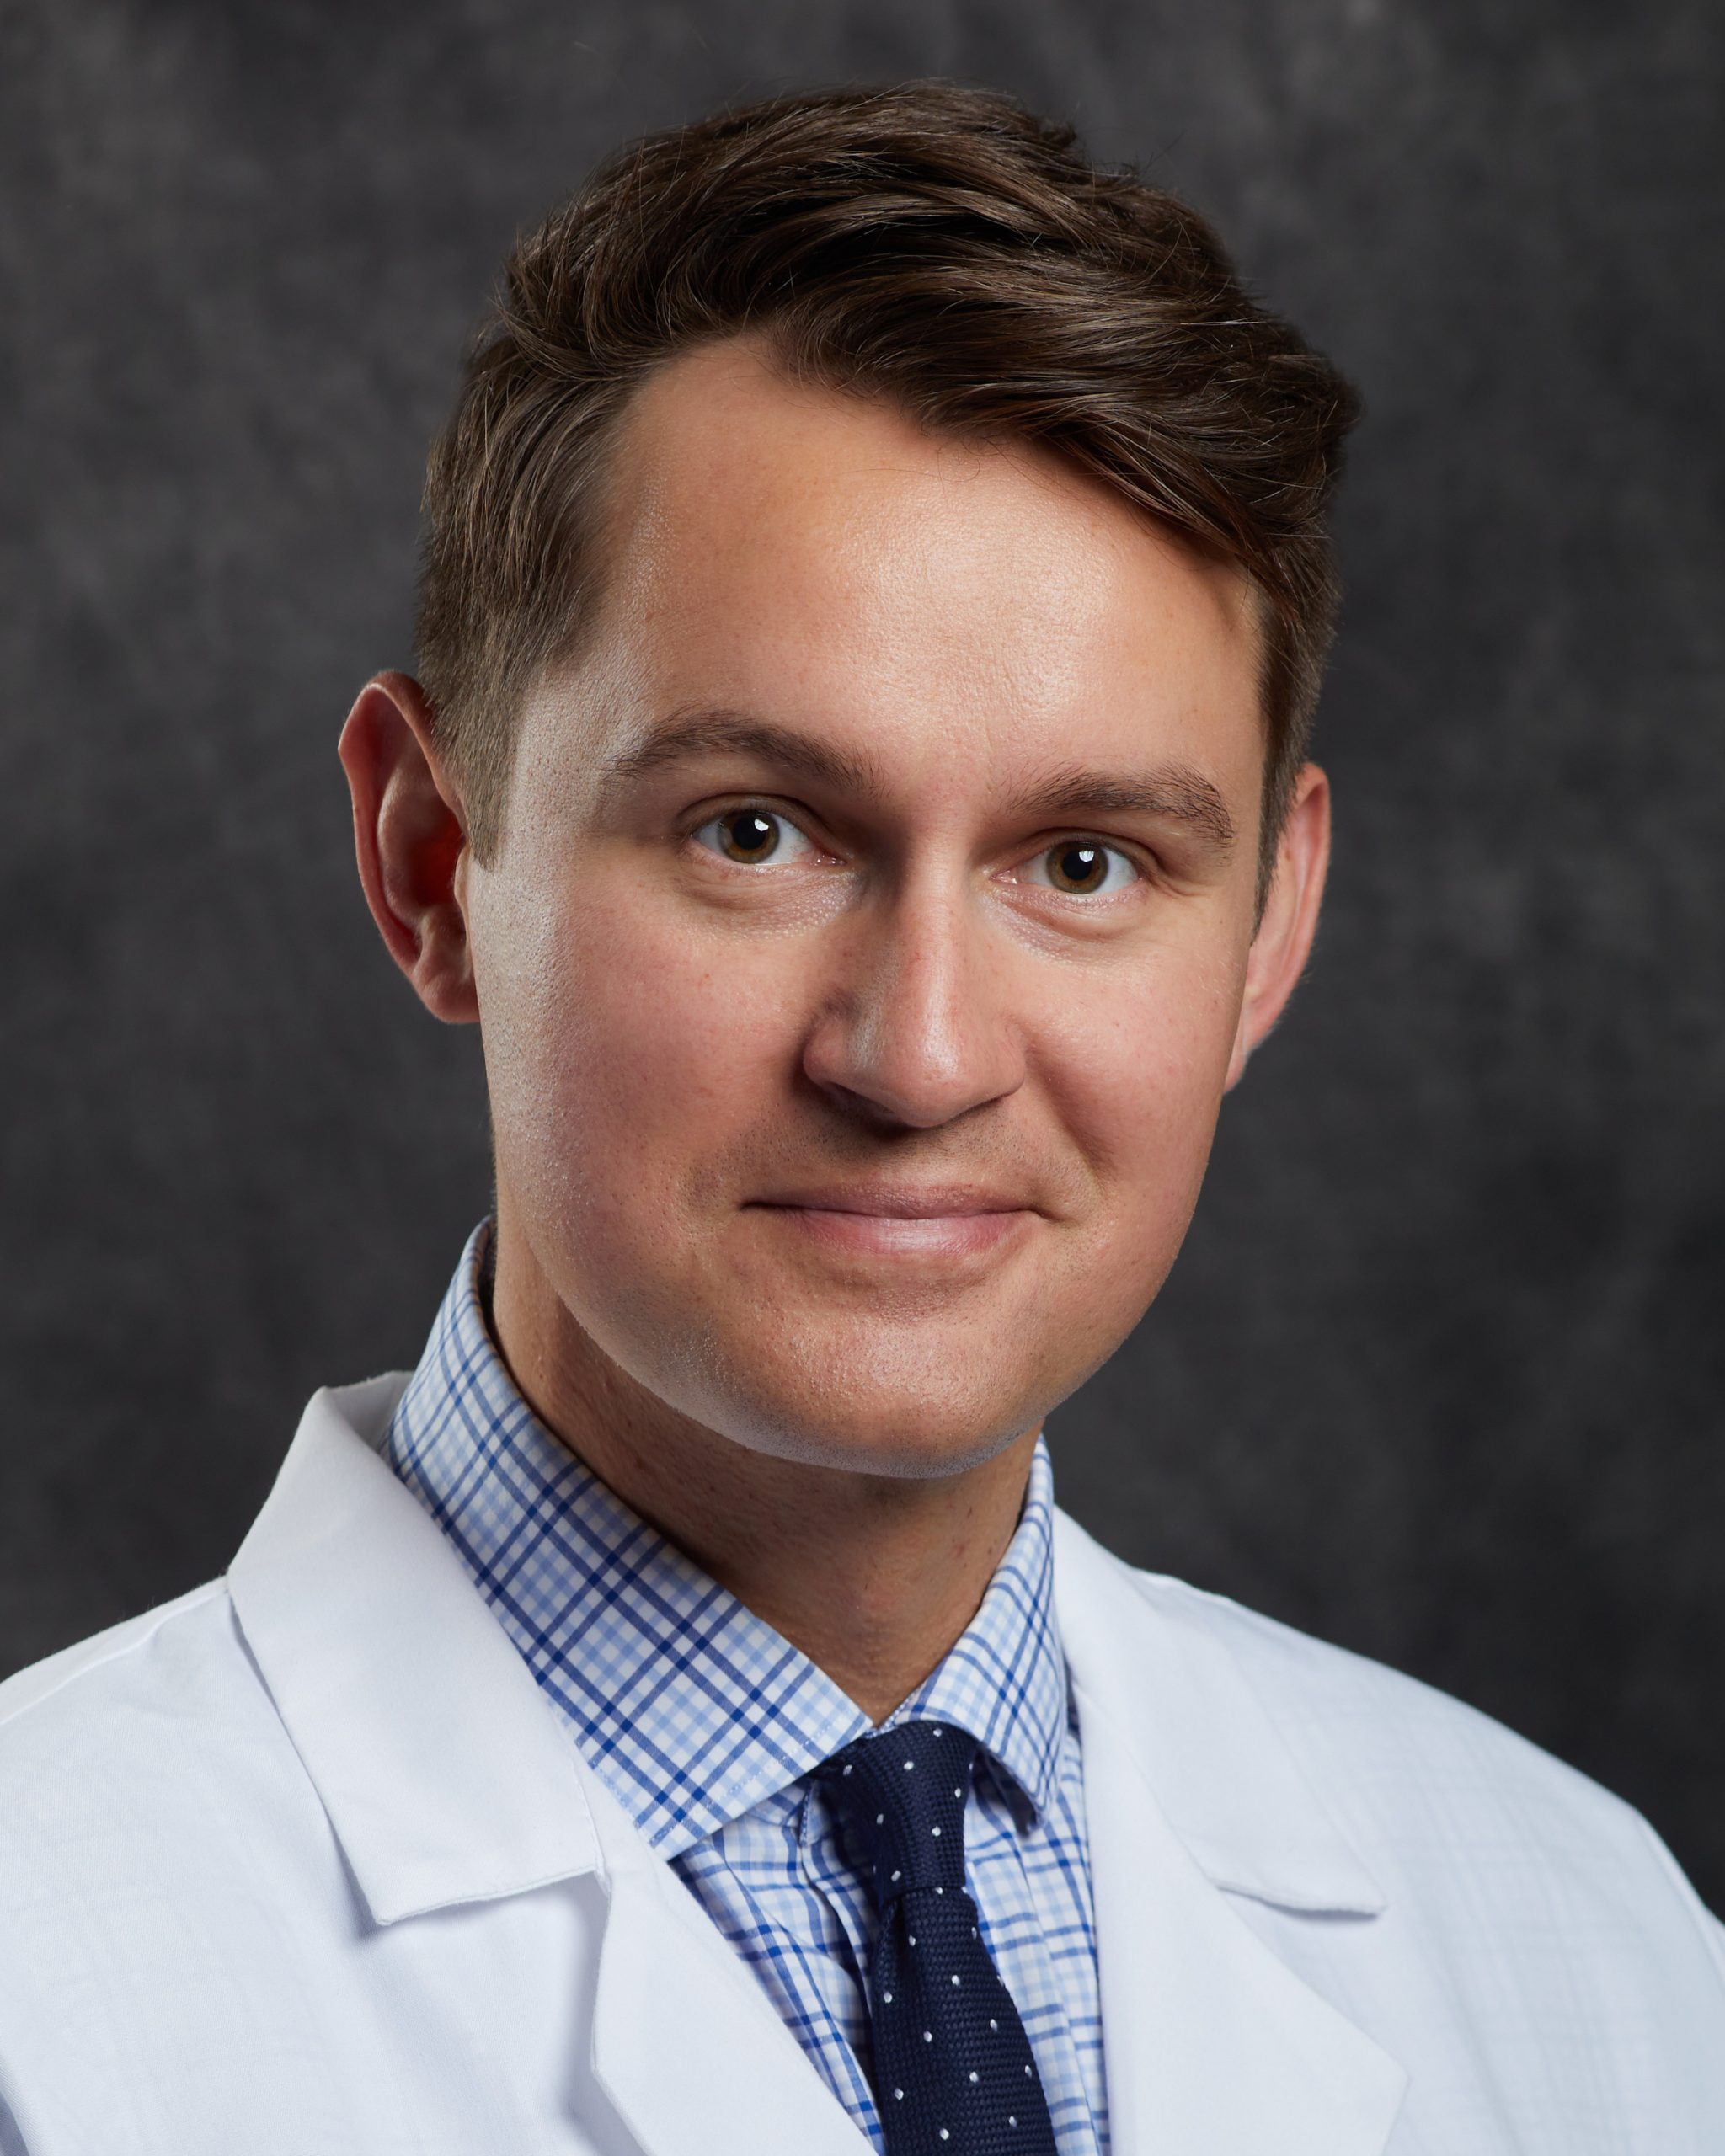 Michael Tuczynski, MD - An Employed Provider of Memorial Healthcare